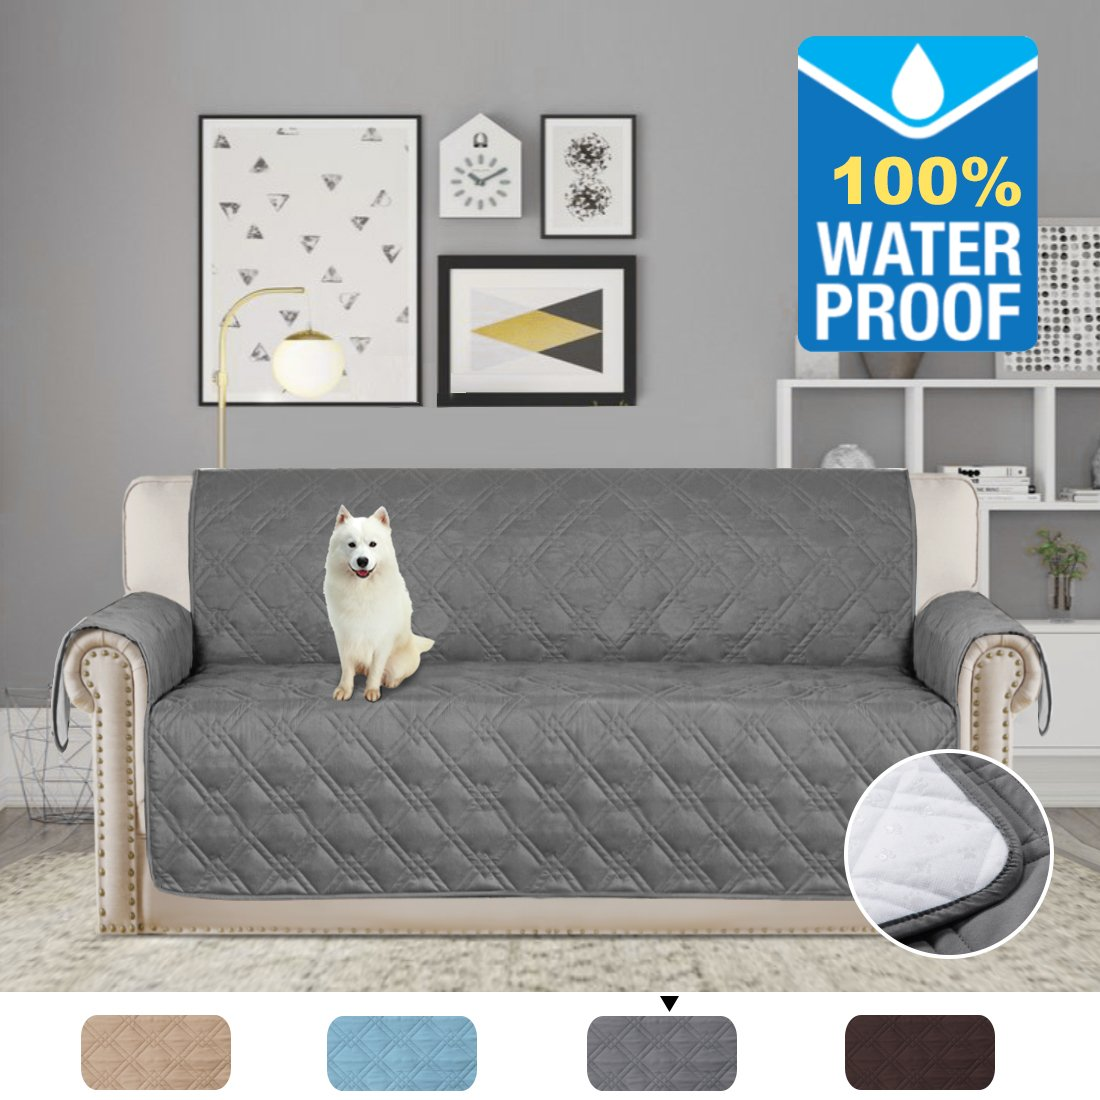 H.VERSAILTEX Home Fashion Quilted Furniture Protector Stay in Place with Plastic Drop Printing Microfiber Soft and Water-Repellent (Sofa: Grey) - 75'' X 112''